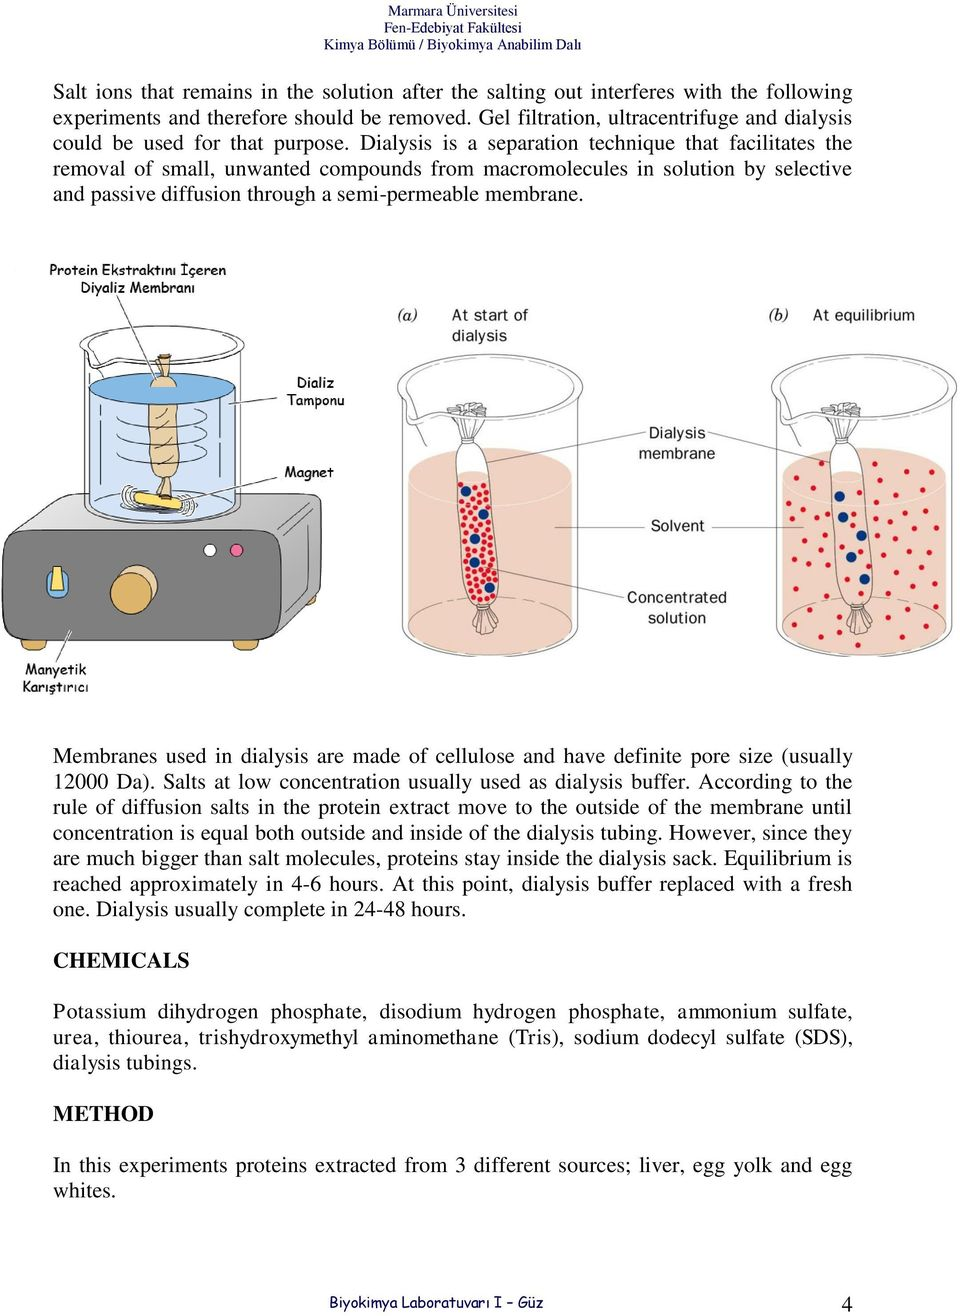 Dialysis is a separation technique that facilitates the removal of small, unwanted compounds from macromolecules in solution by selective and passive diffusion through a semi-permeable membrane.